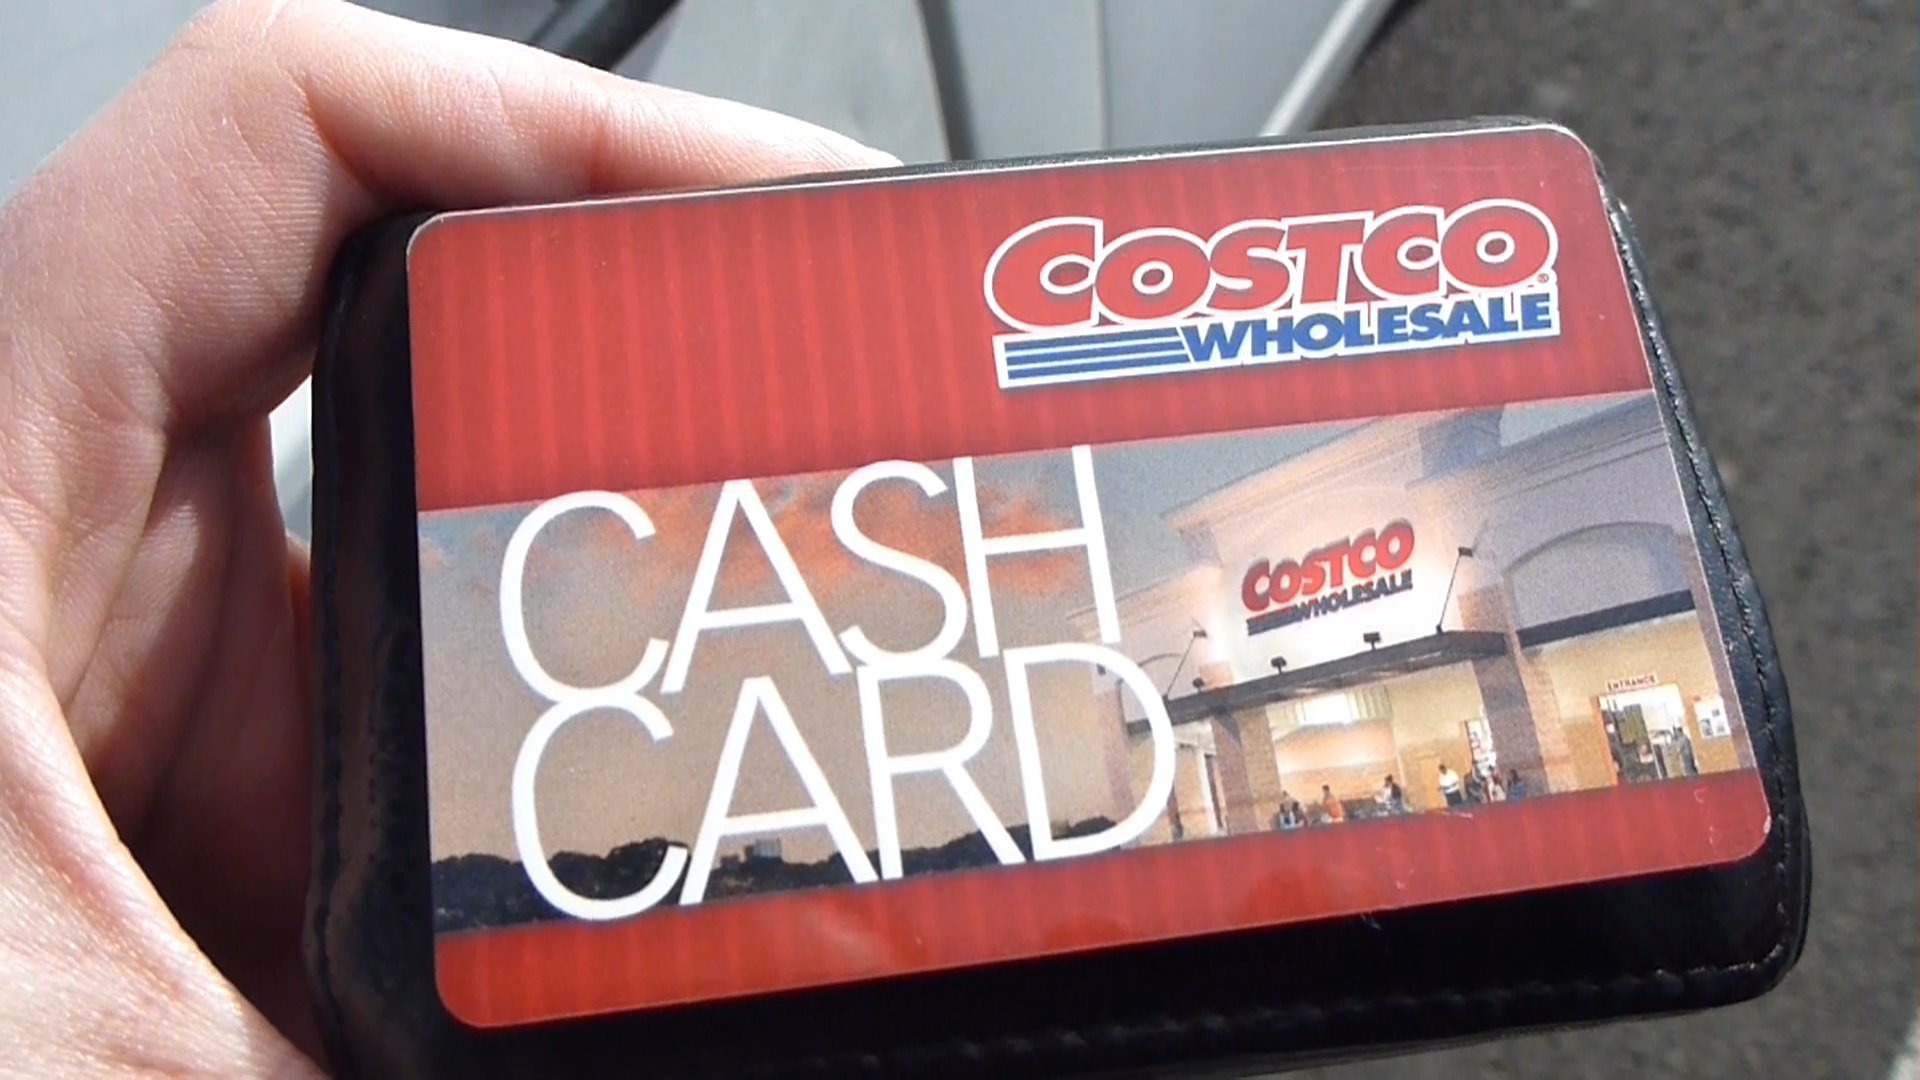 how to buy from costco without a membership